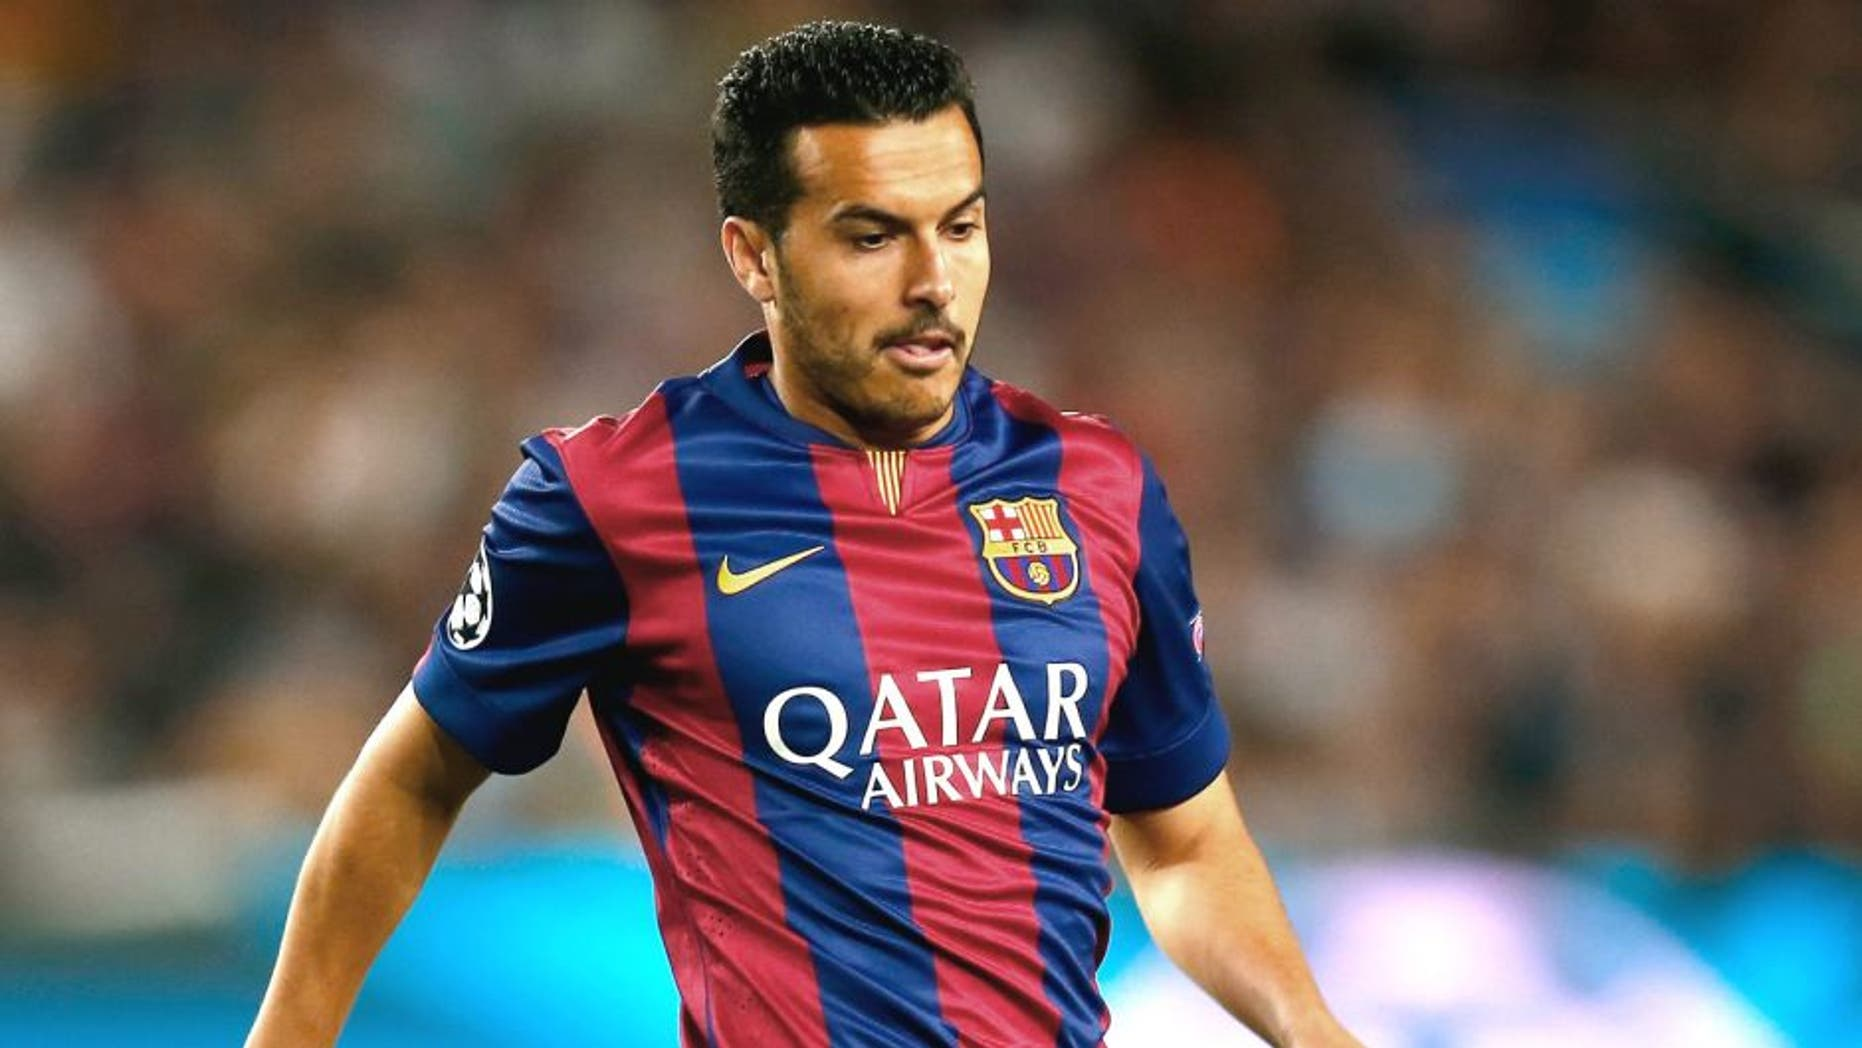 BARCELONA, SPAIN - APRIL 21: Pedro Rodriguez of Barcelona in action during the UEFA Champions League Quarter Final second leg match between FC Barcelona and Paris Saint-Germain at Camp Nou on April 21, 2015 in Barcelona, Spain. (Photo by Clive Rose/Getty Images)